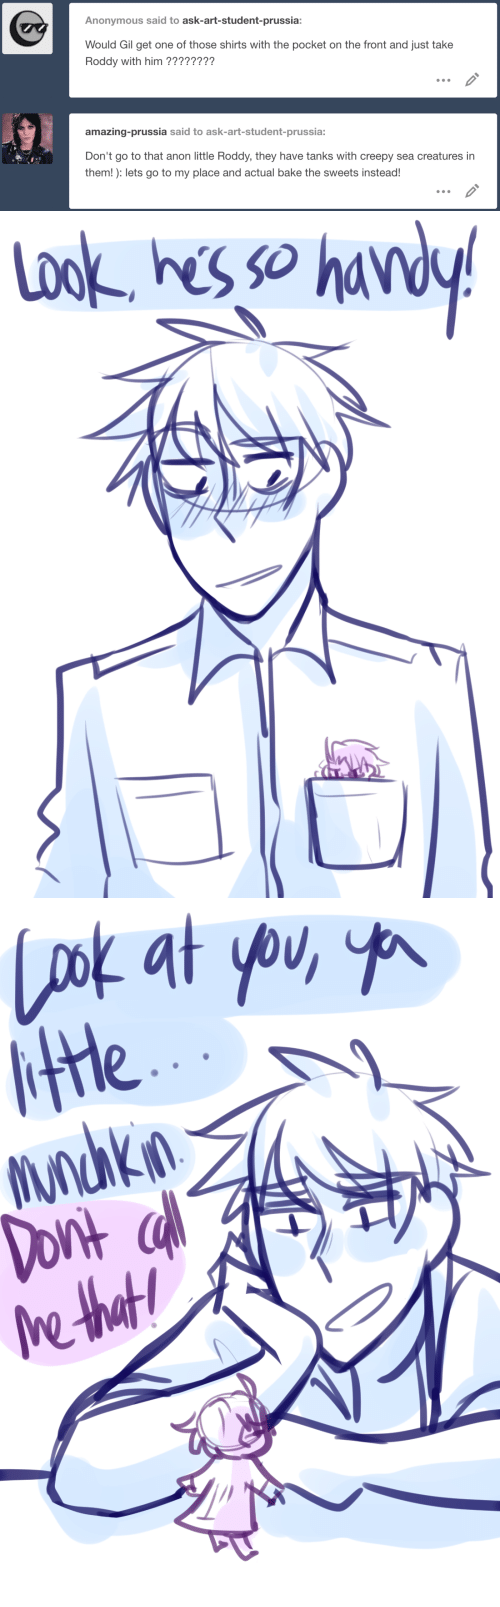 Creepy, Anonymous, and Amazing: Anonymous said to ask-art-student-prussia:  Would Gil get one of those shirts with the pocket on the front and just take  Roddy with him ????????  amazing-prussia said to ask-art-student-prussia:  Don't go to that anon little Roddy, they have tanks with creepy sea creatures in  them!): lets go to my place and actual bake the sweets instead!